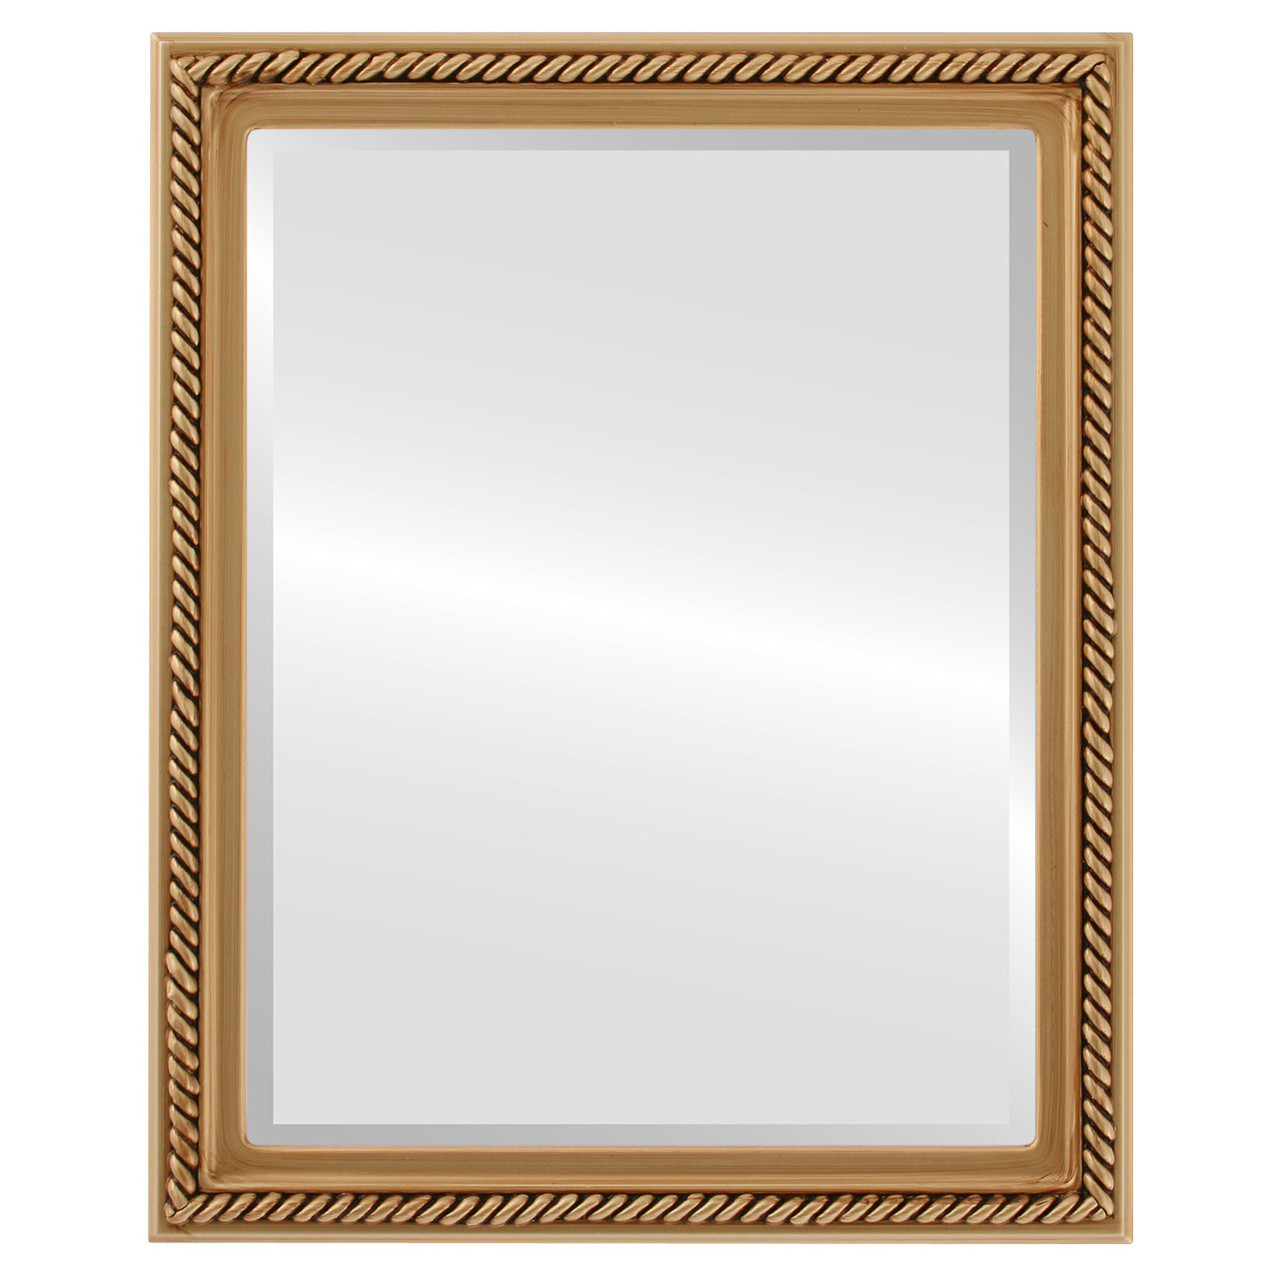 Gold Rectangle Mirrors From 136 Santa Fe Gold Paint Free Shipping